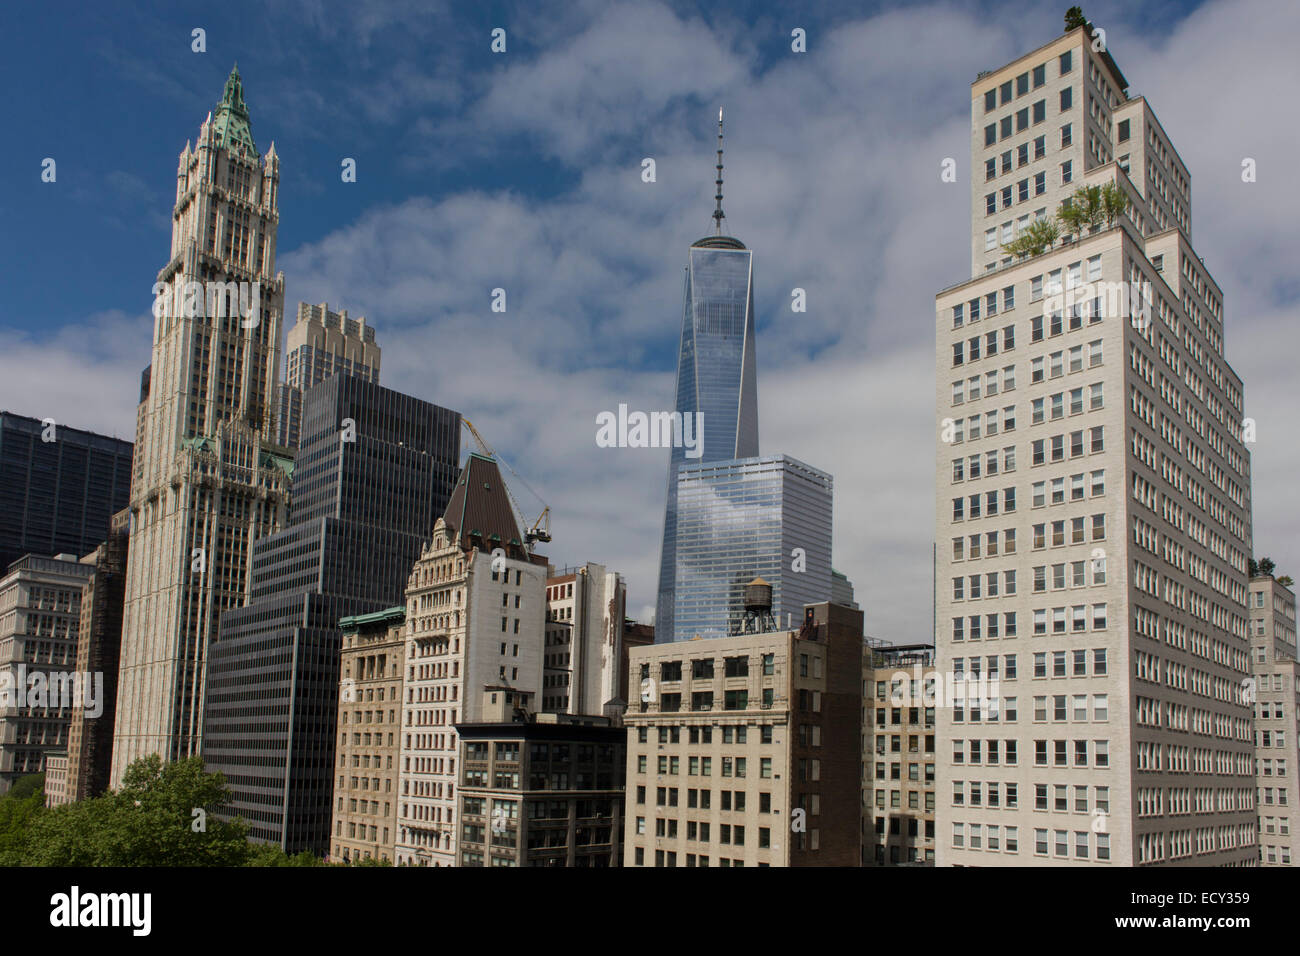 Wide cityscape of skyscrapers looking across Broadway to the modern WTC center in Manhattan, New York City. - Stock Image